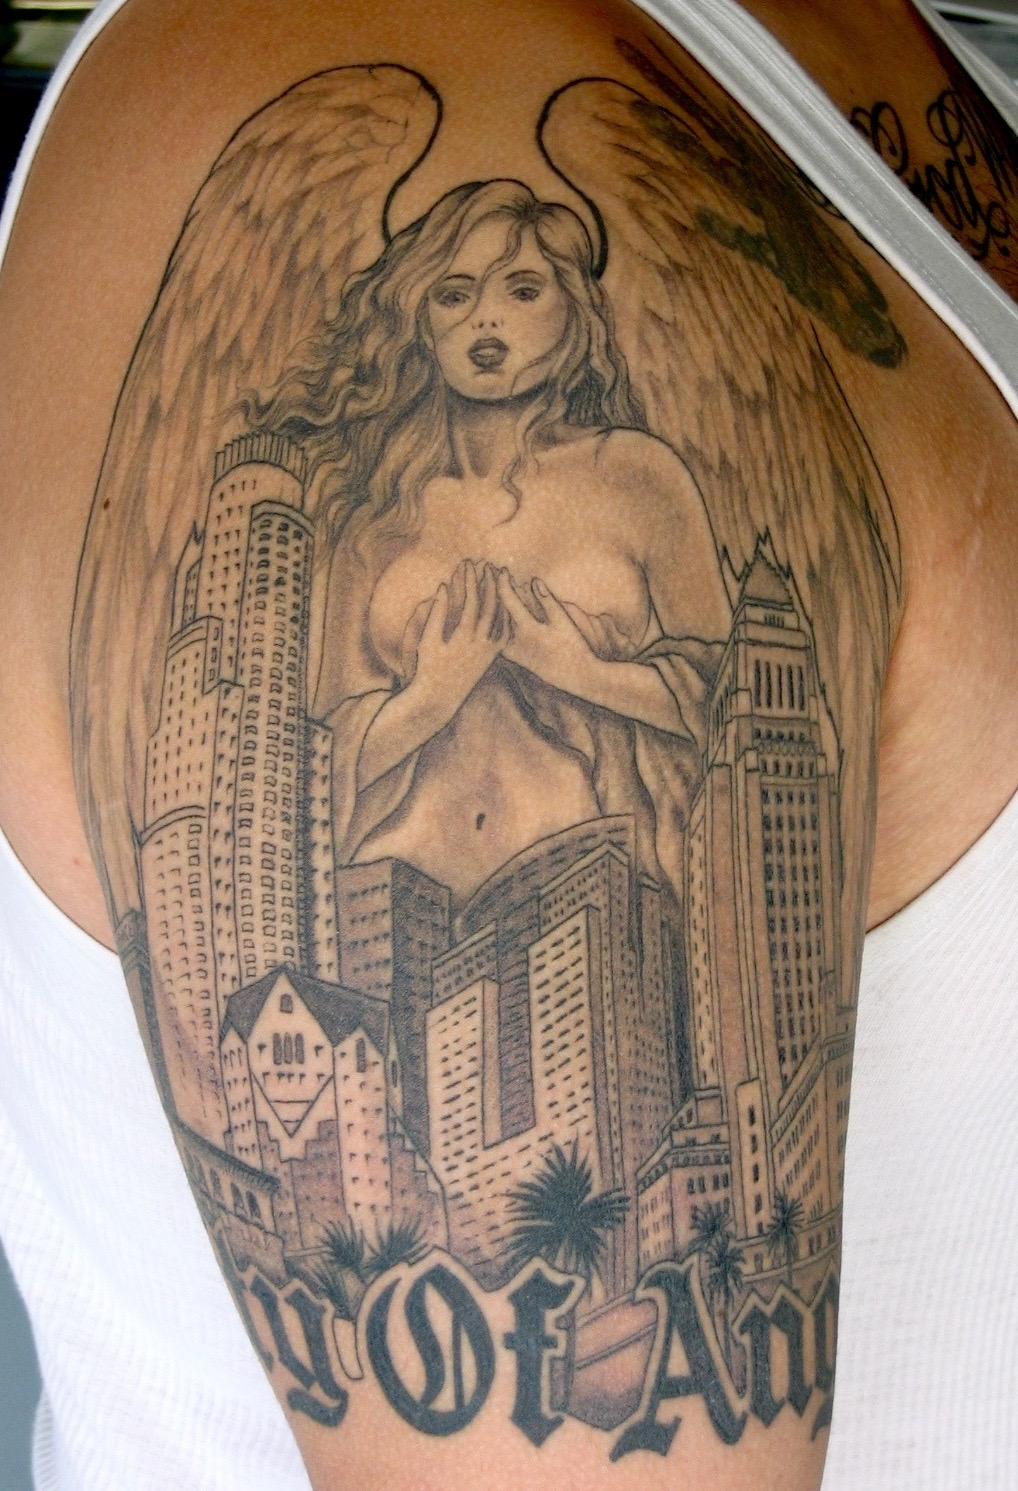 City of Angeles tattoo, Karina Mayorga